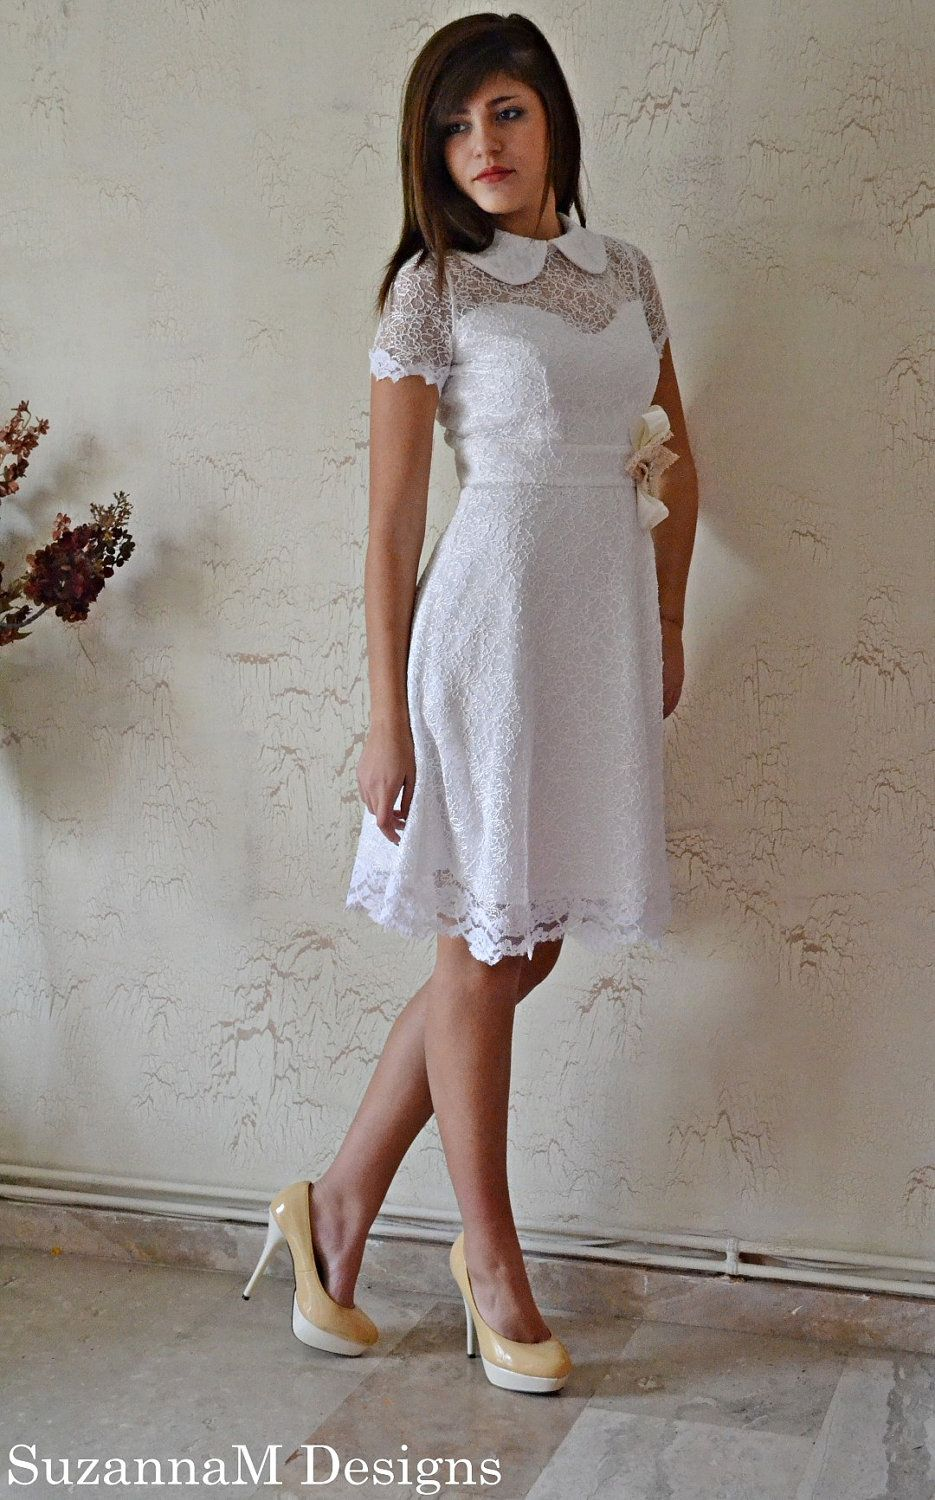 50s White Wedding Dress / Two Lace Gown - Handmade  Tea Dress  by SuzannaM Designs ___ Just get rid of that flower!!!